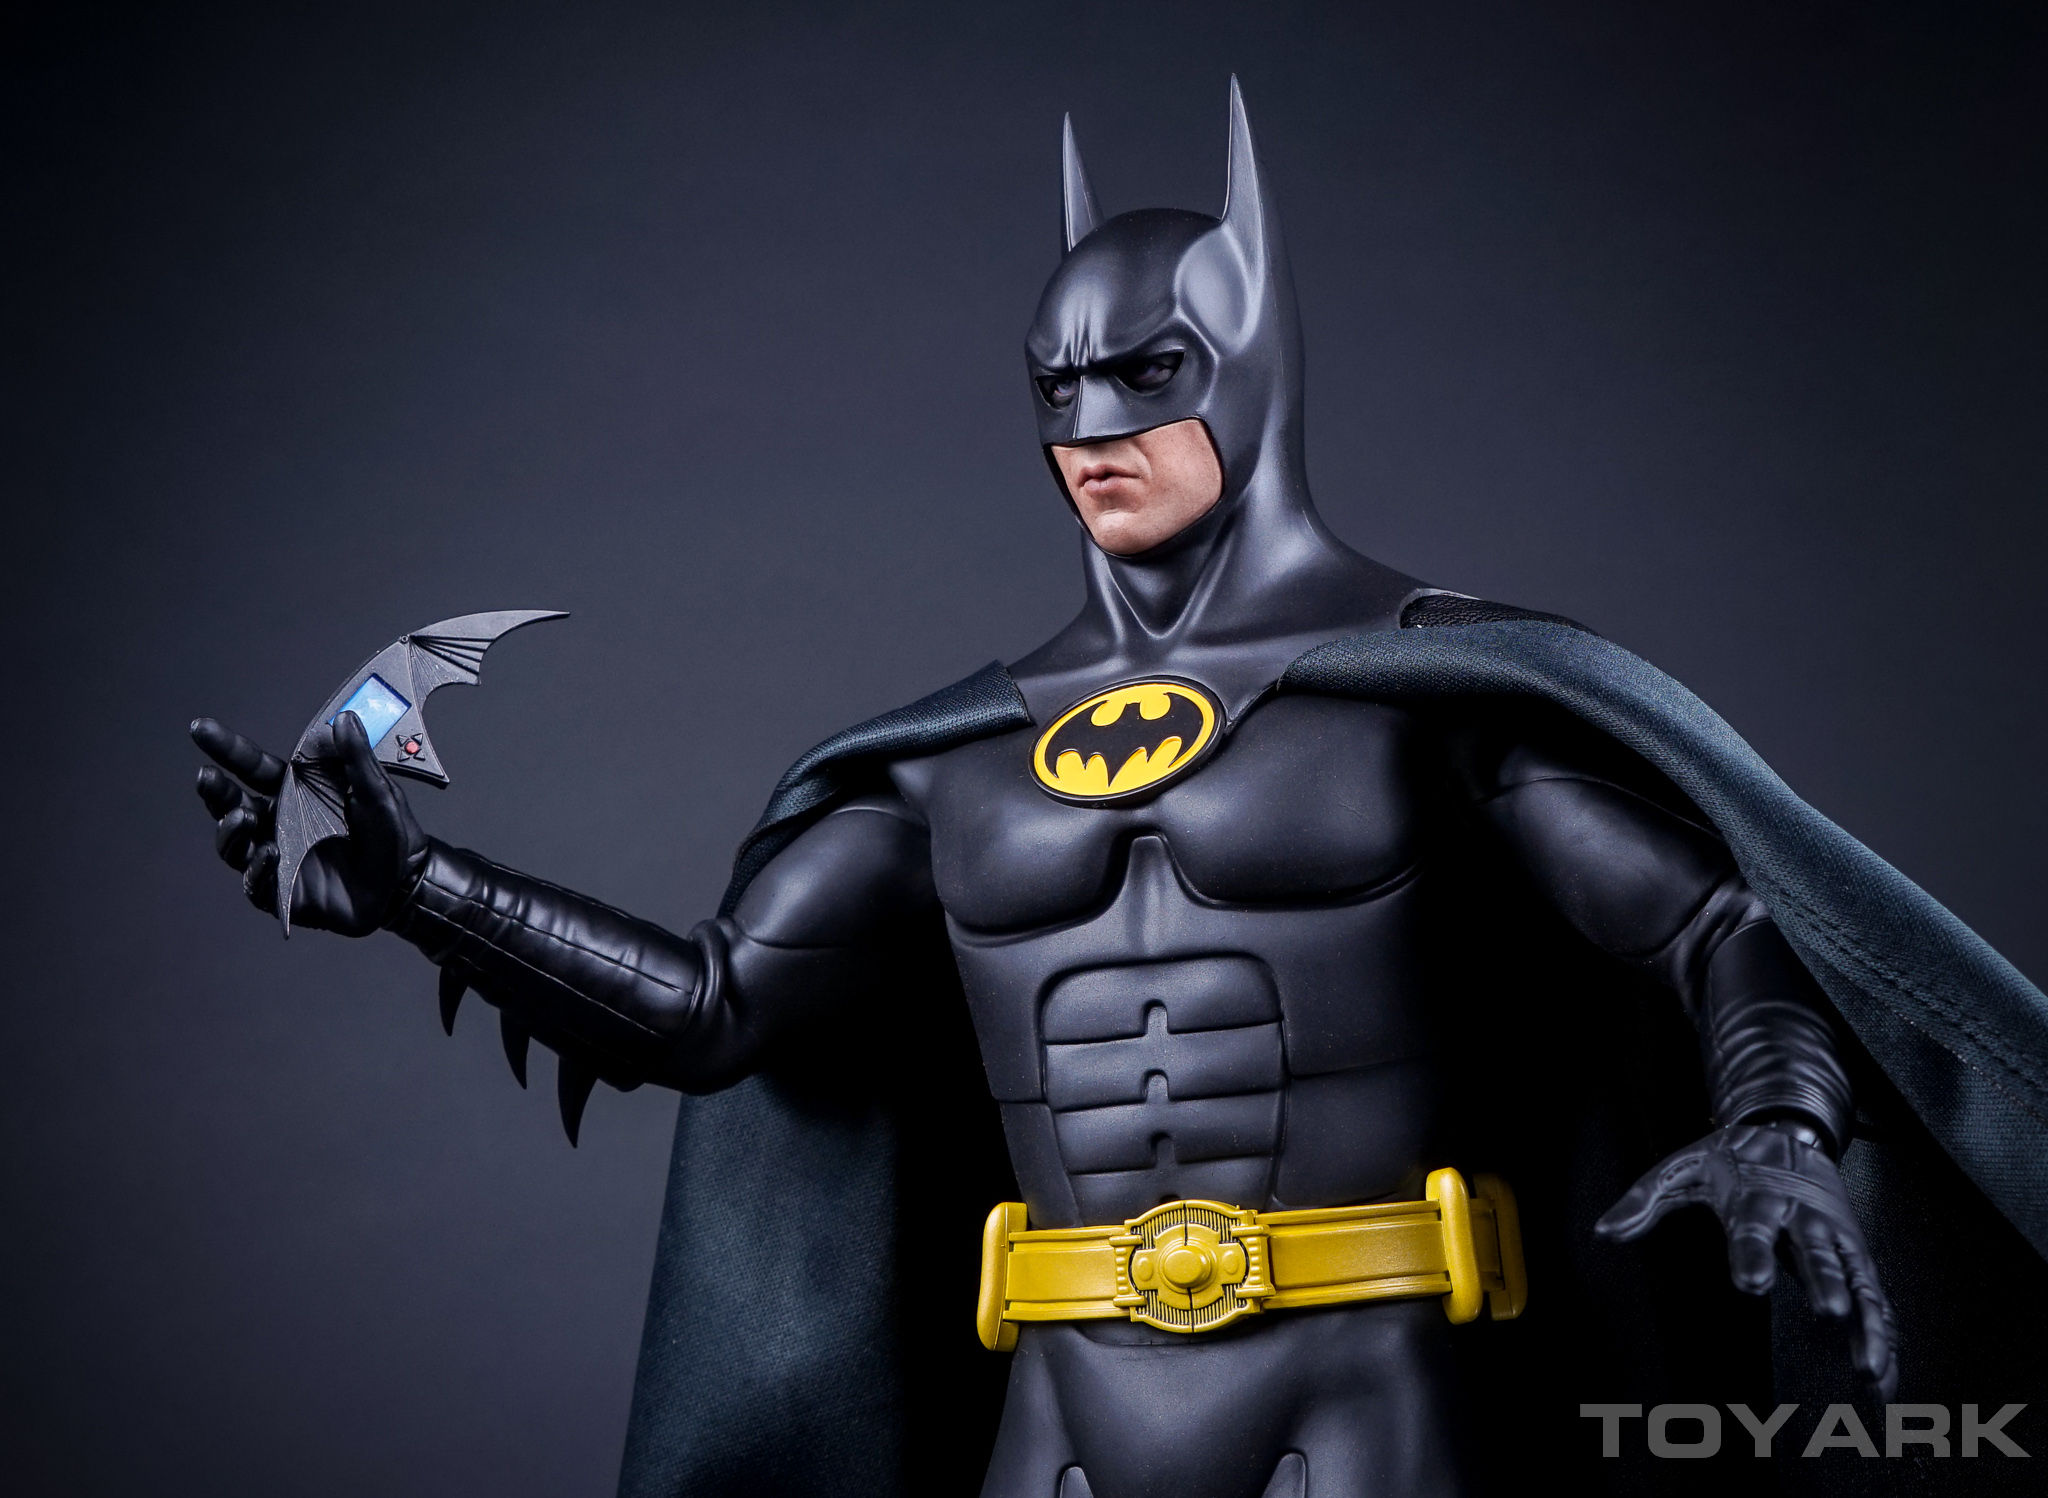 batman returns hot toys batman 1 6 scale figure toyark. Black Bedroom Furniture Sets. Home Design Ideas